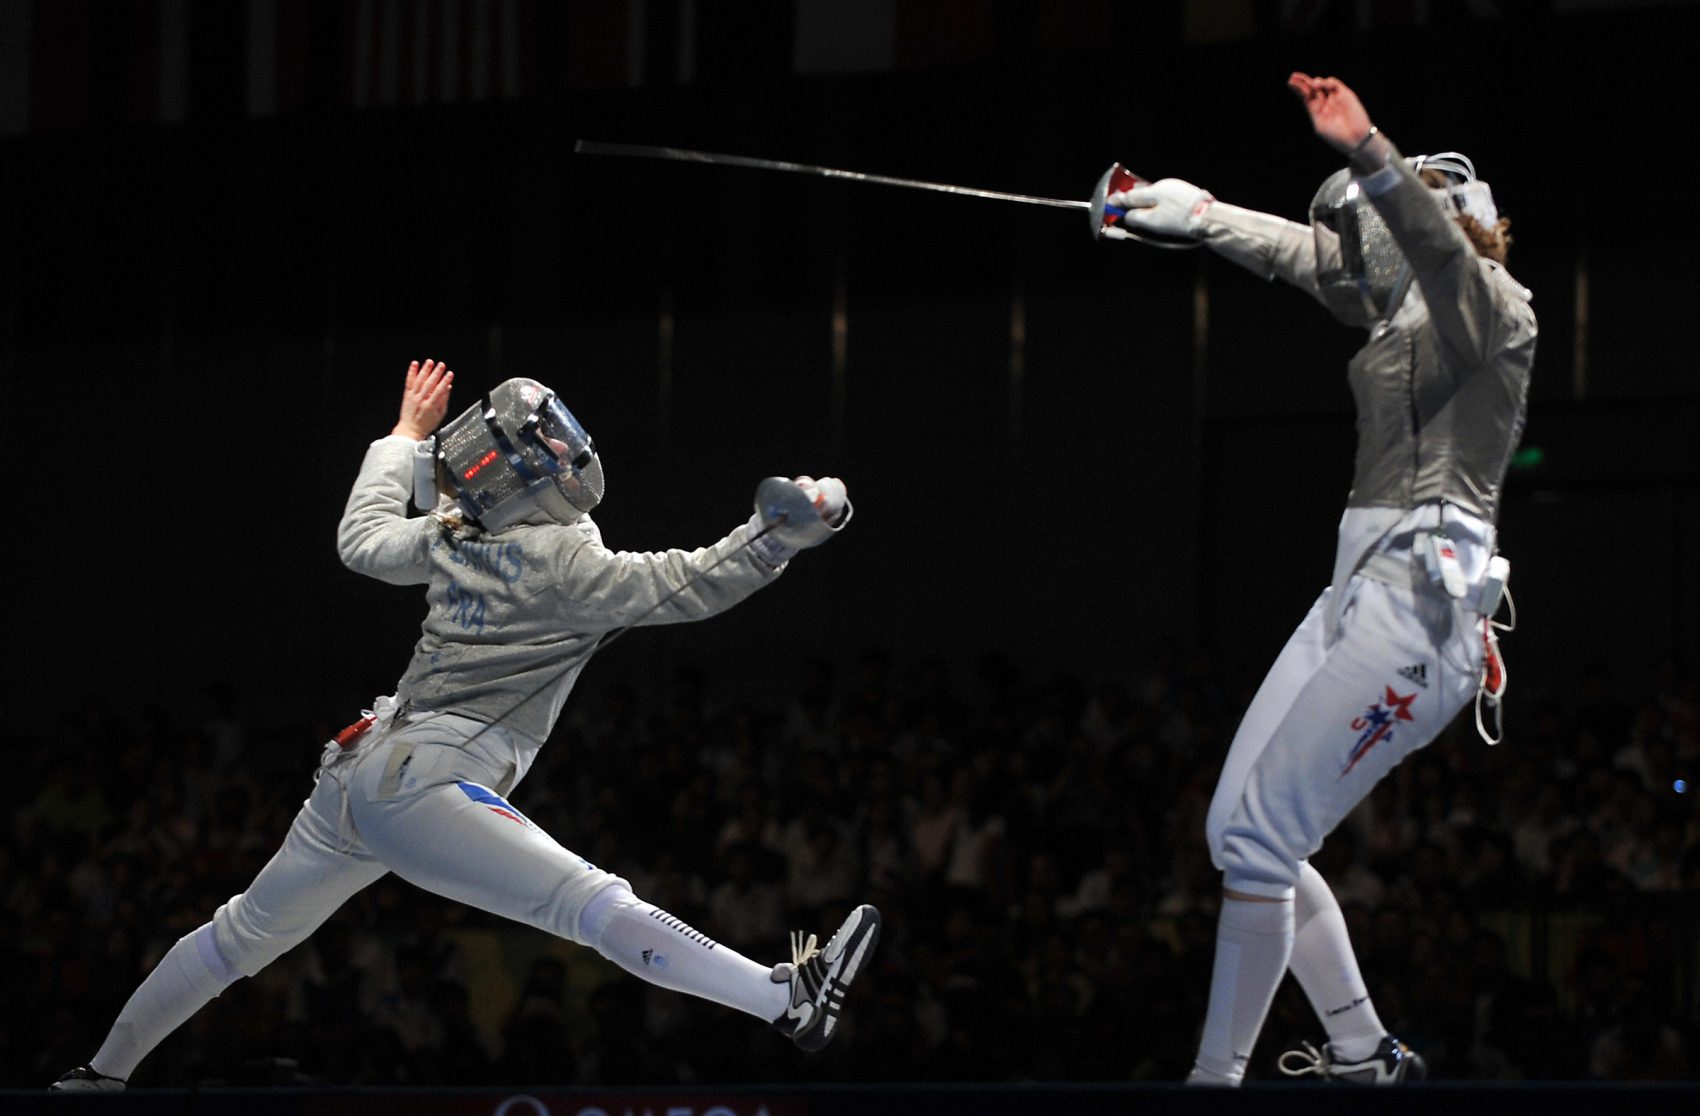 Sada Jacobson US saber fencer, ranked 1 in the world, Olympic silver